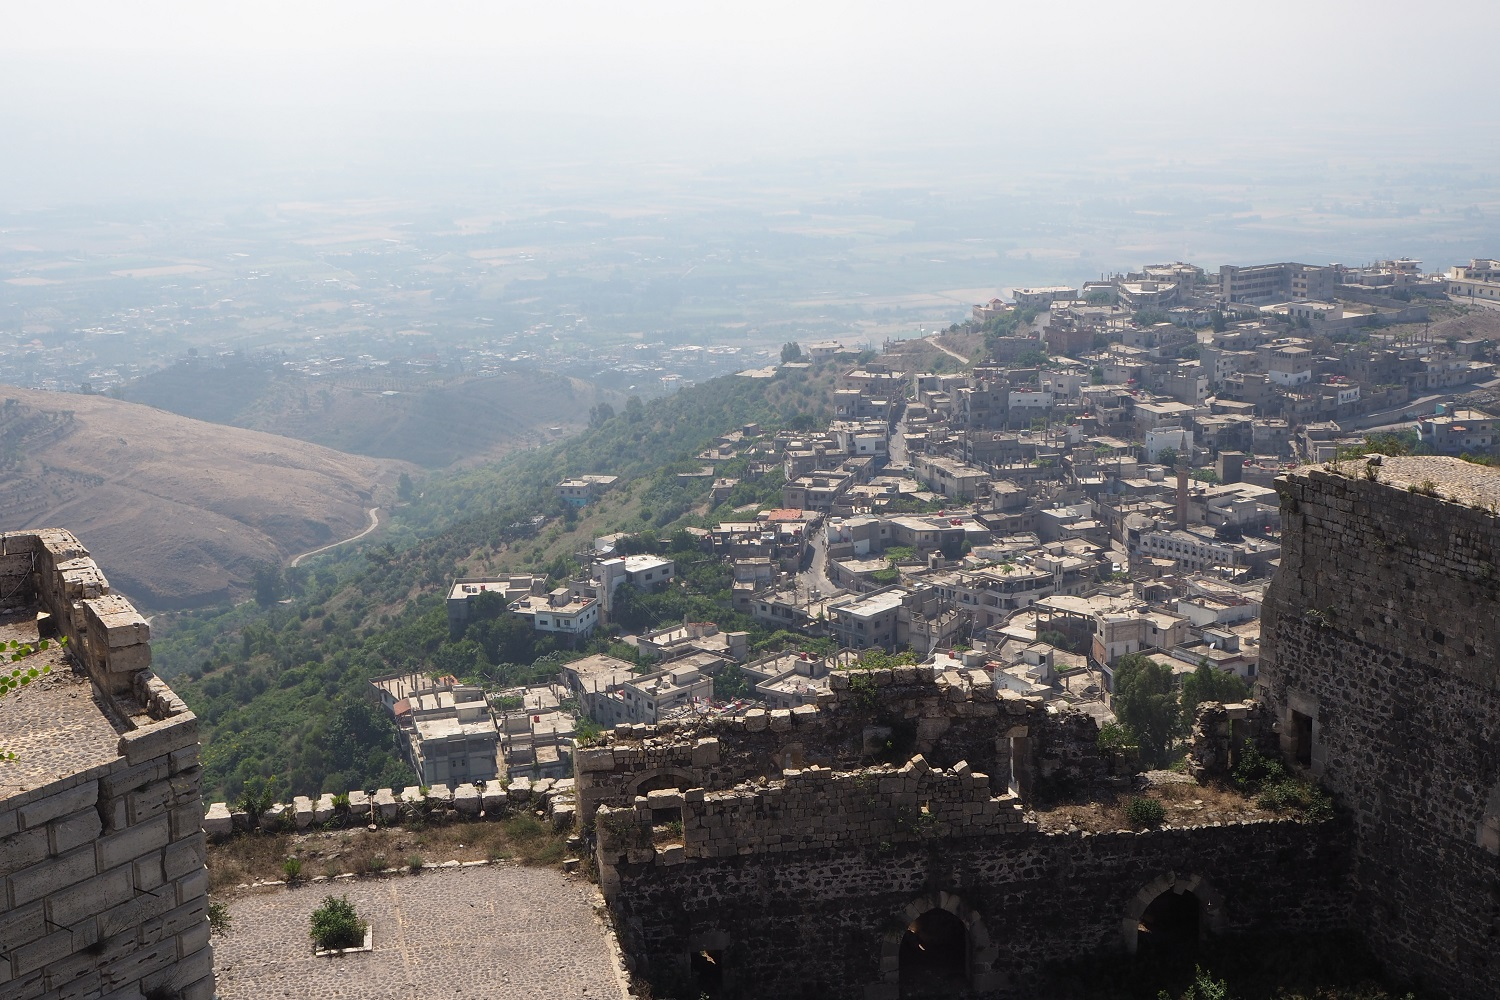 The view looking down on the small town of Al-Husan, where many of the castle workers live (Tom Westcott/MEE)